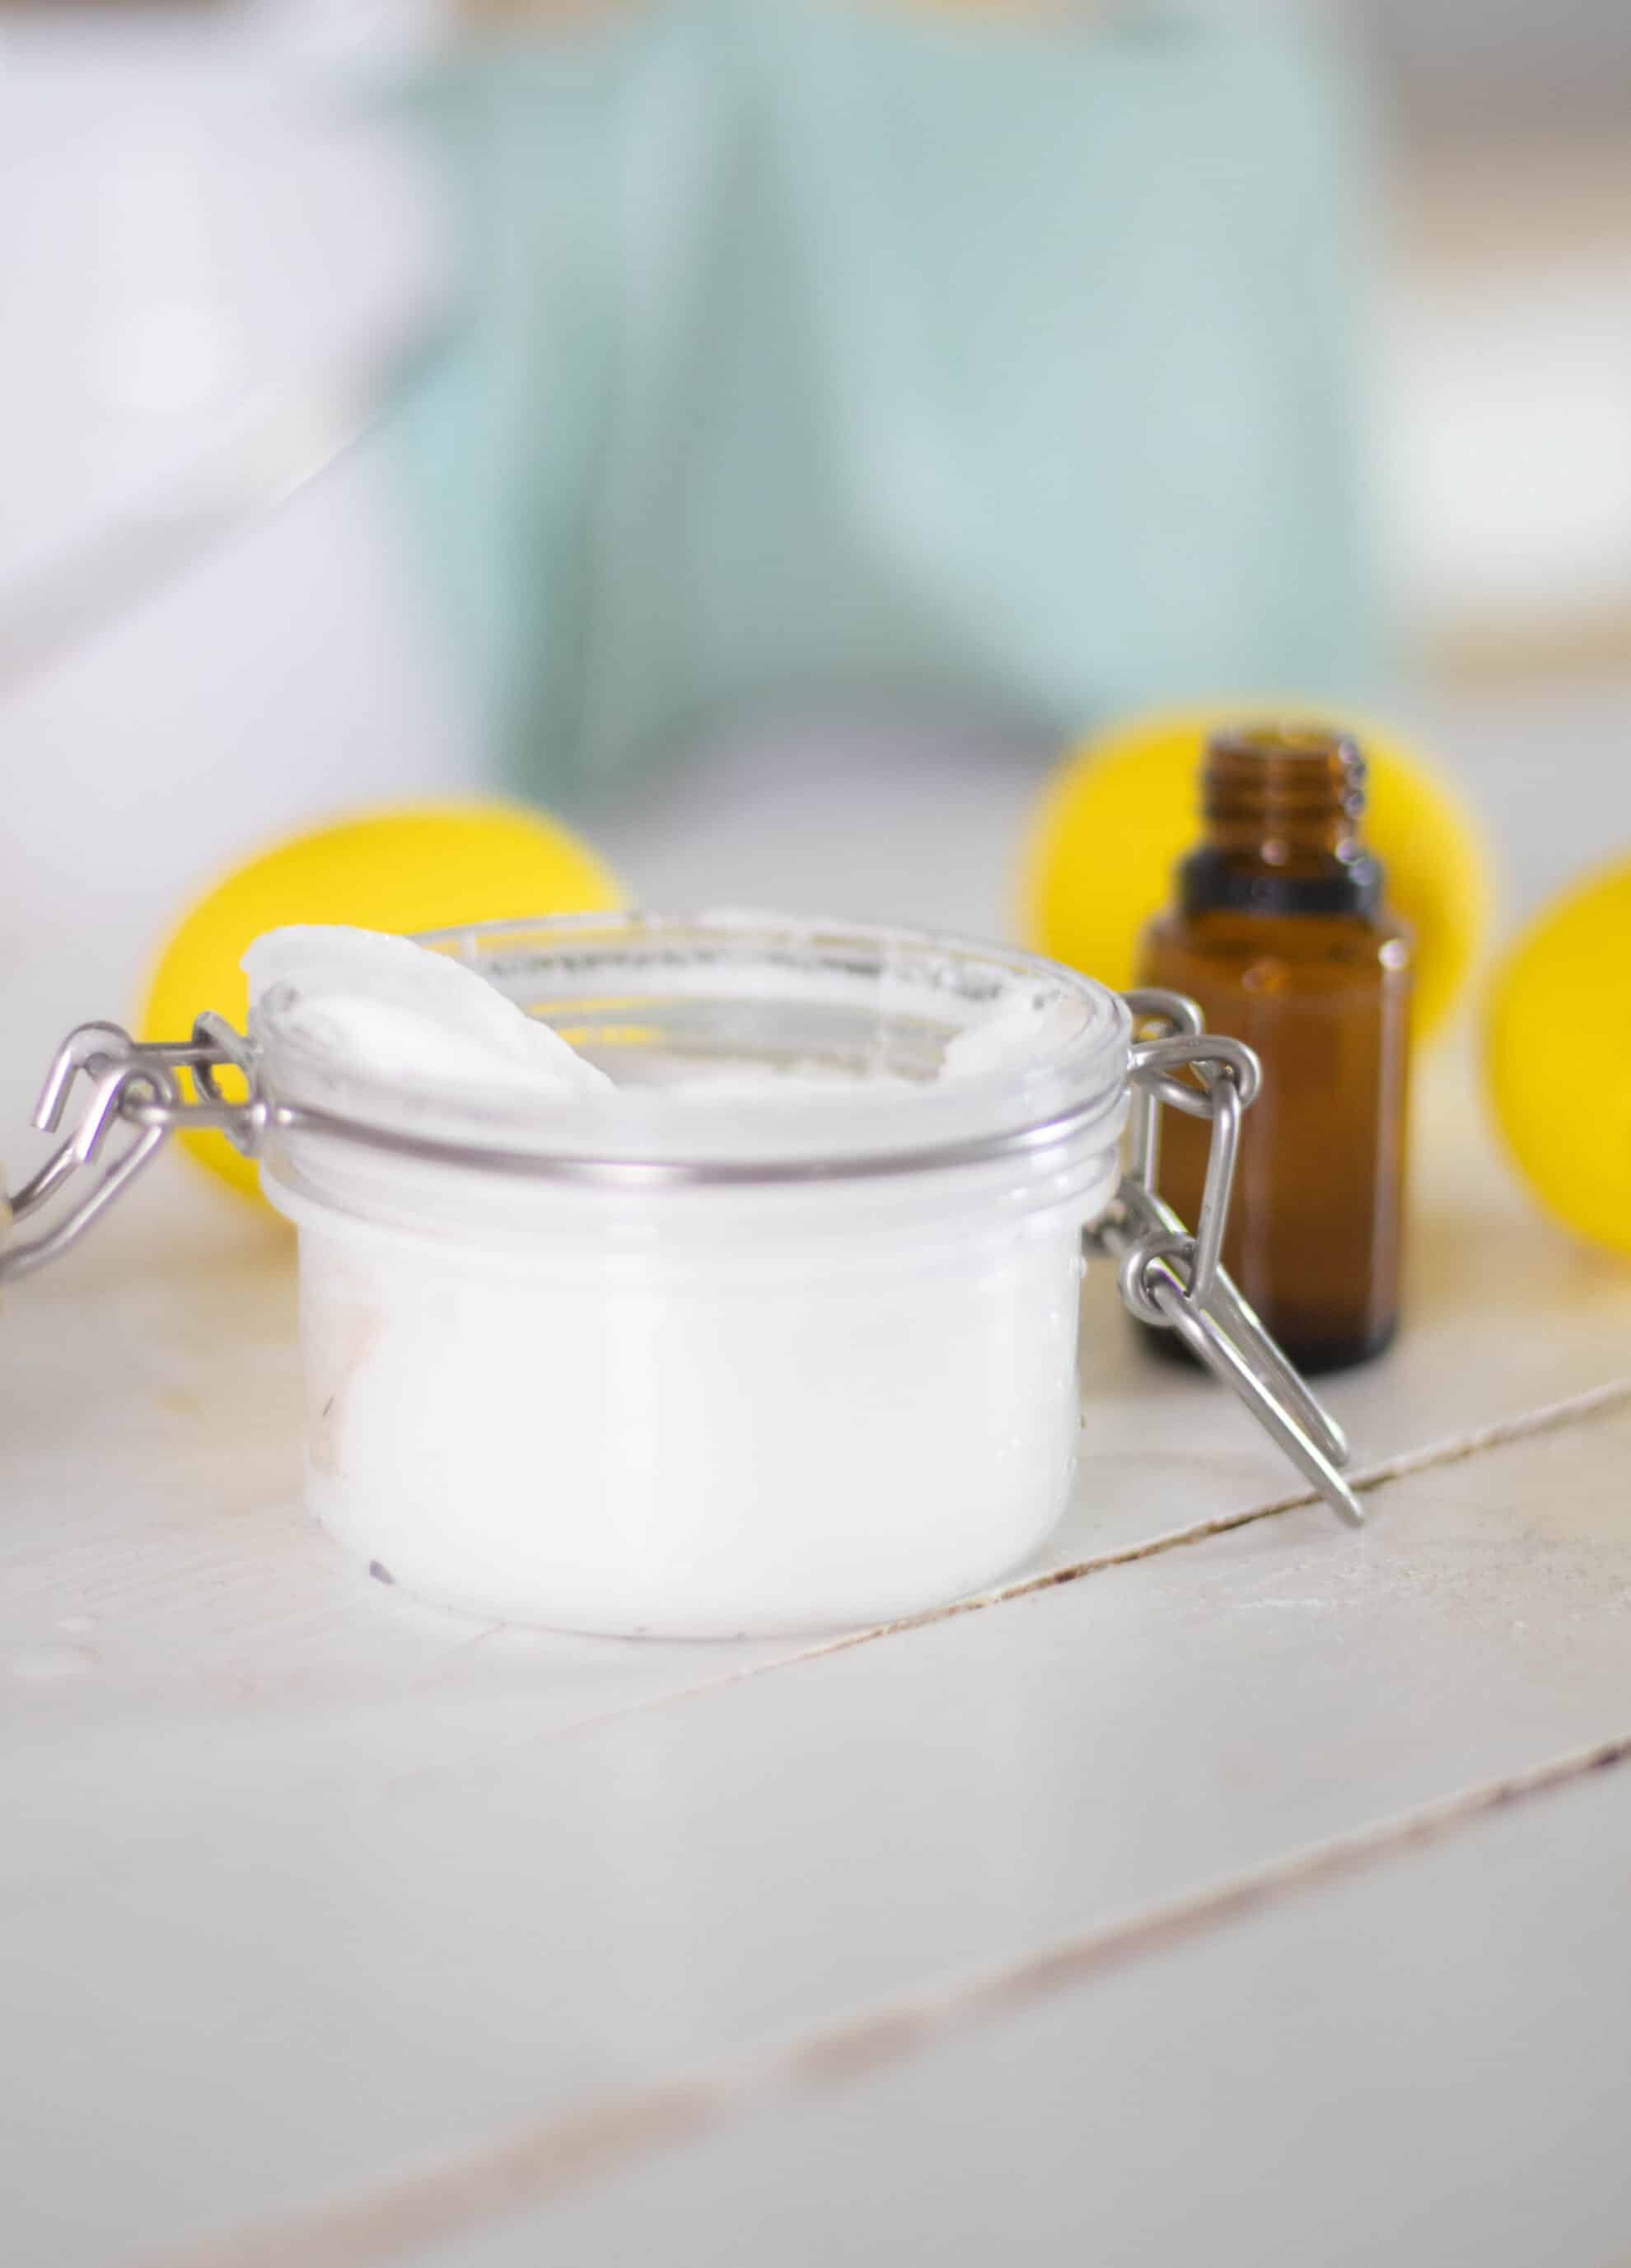 white soft scrub in glass jar on white ship lap, amber essential oil bottle and lemons in background